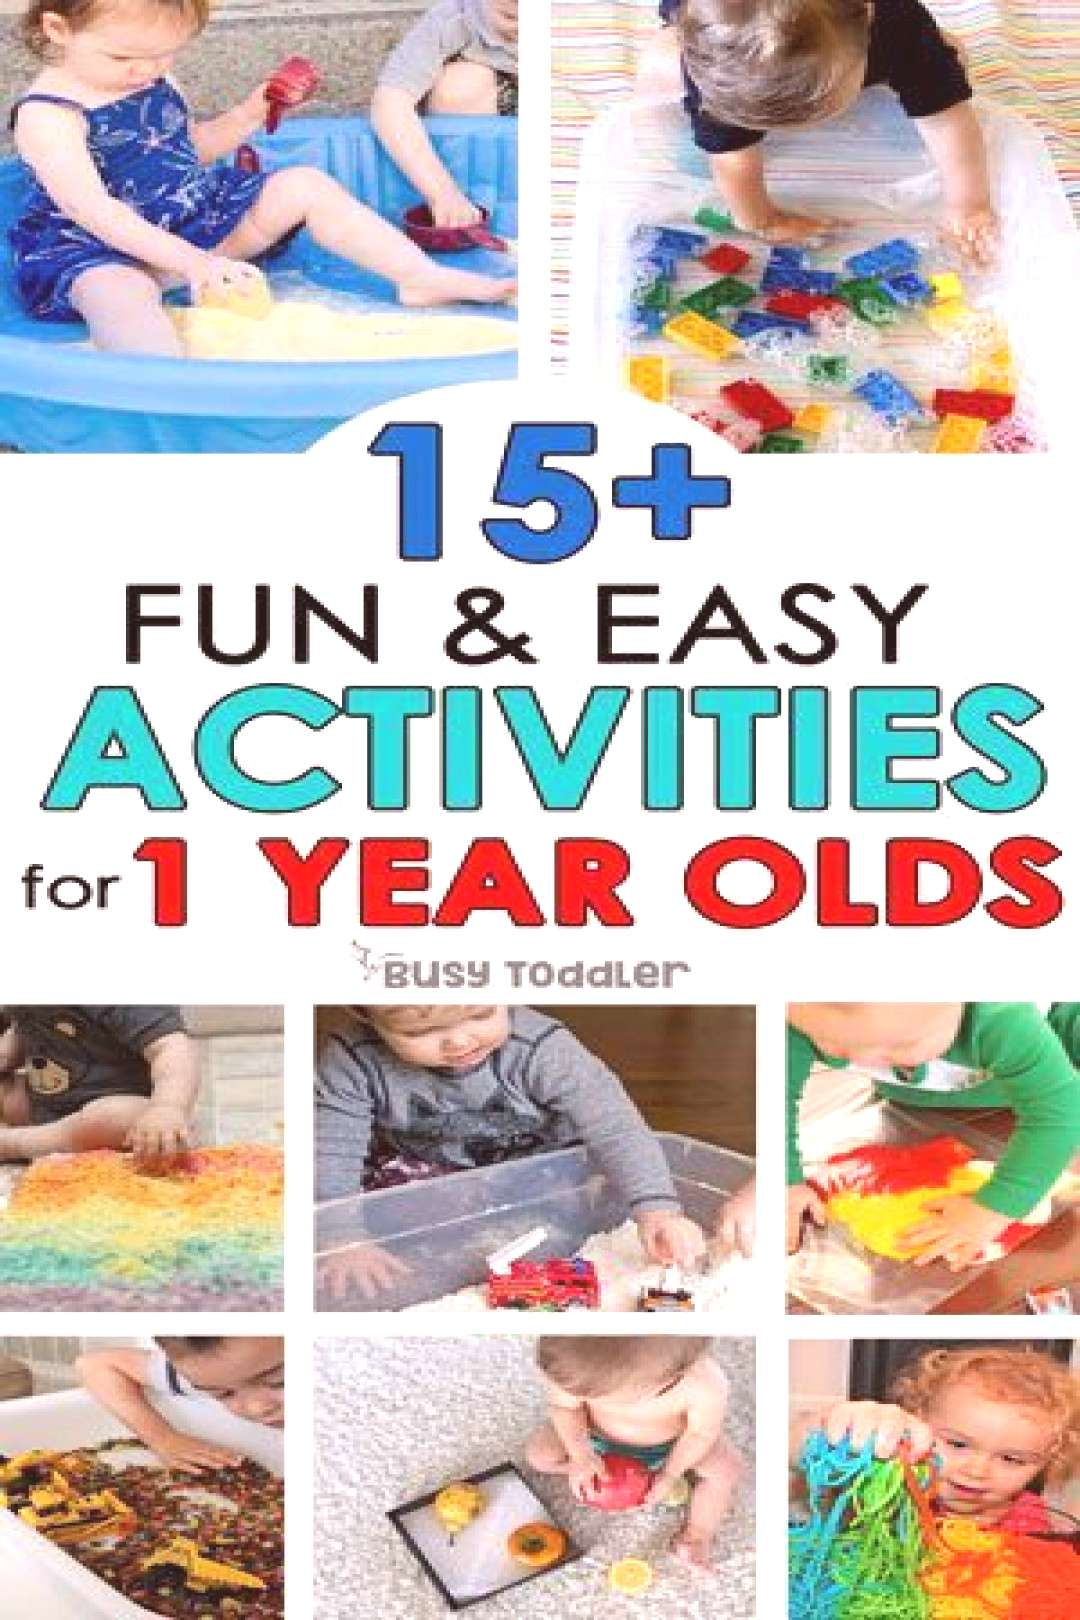 30+ Easy Activities for 1 Year Olds - Busy Toddler 30+ Easy Activities for 1 Year Olds - Busy Toddl